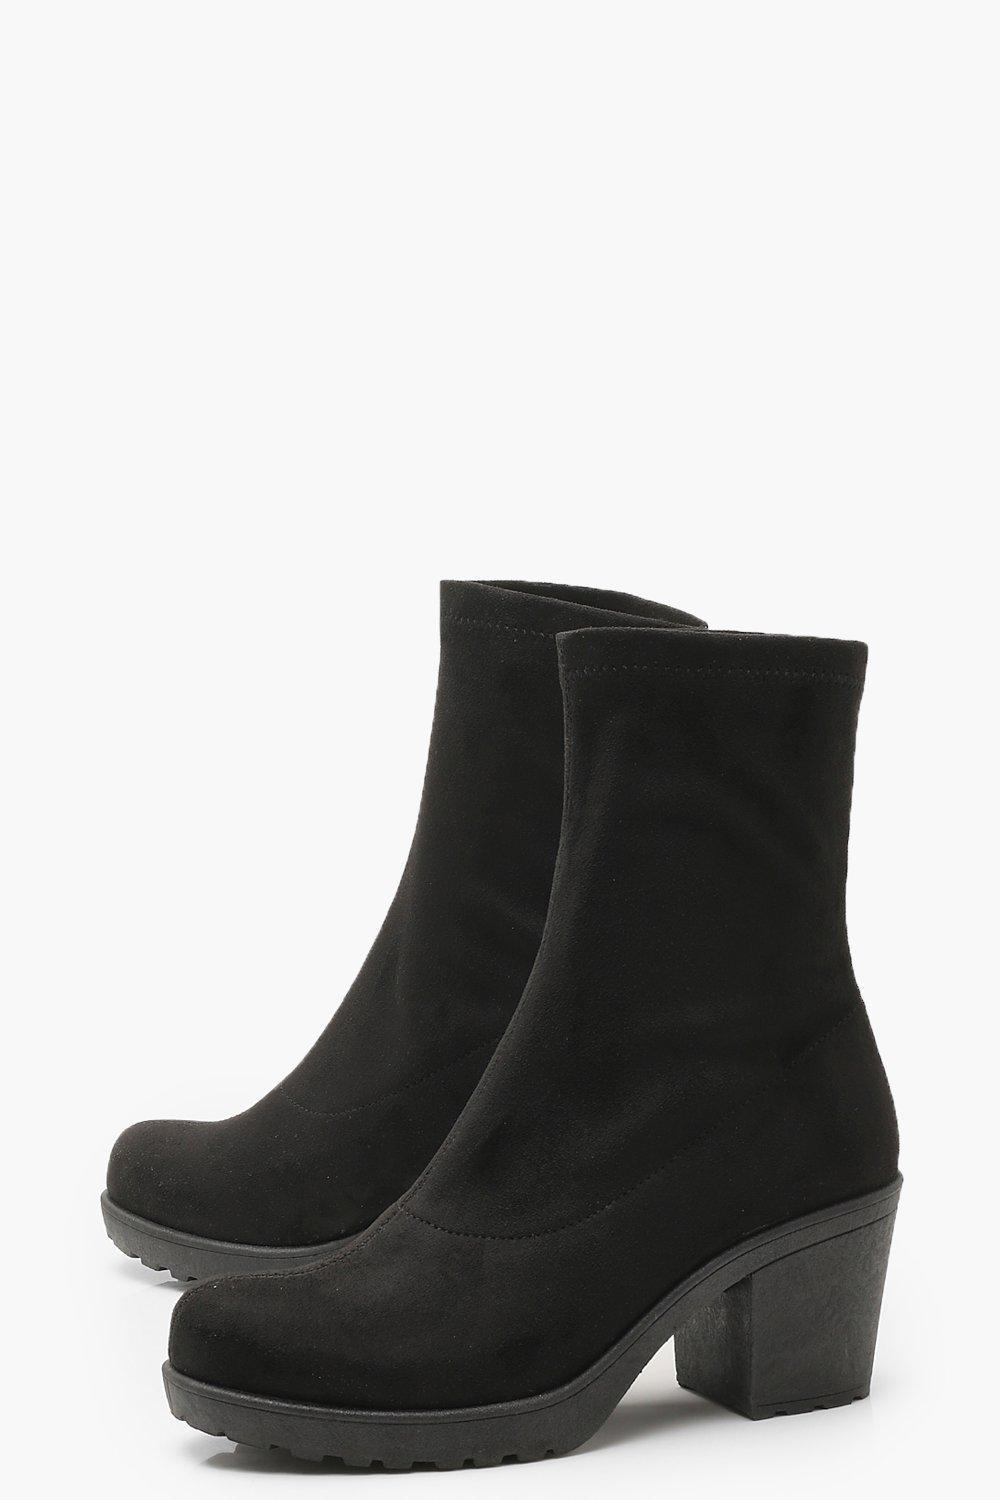 fa825291cdc0 Boohoo - Black Wide Fit Cleated Pull On Sock Boots - Lyst. View fullscreen